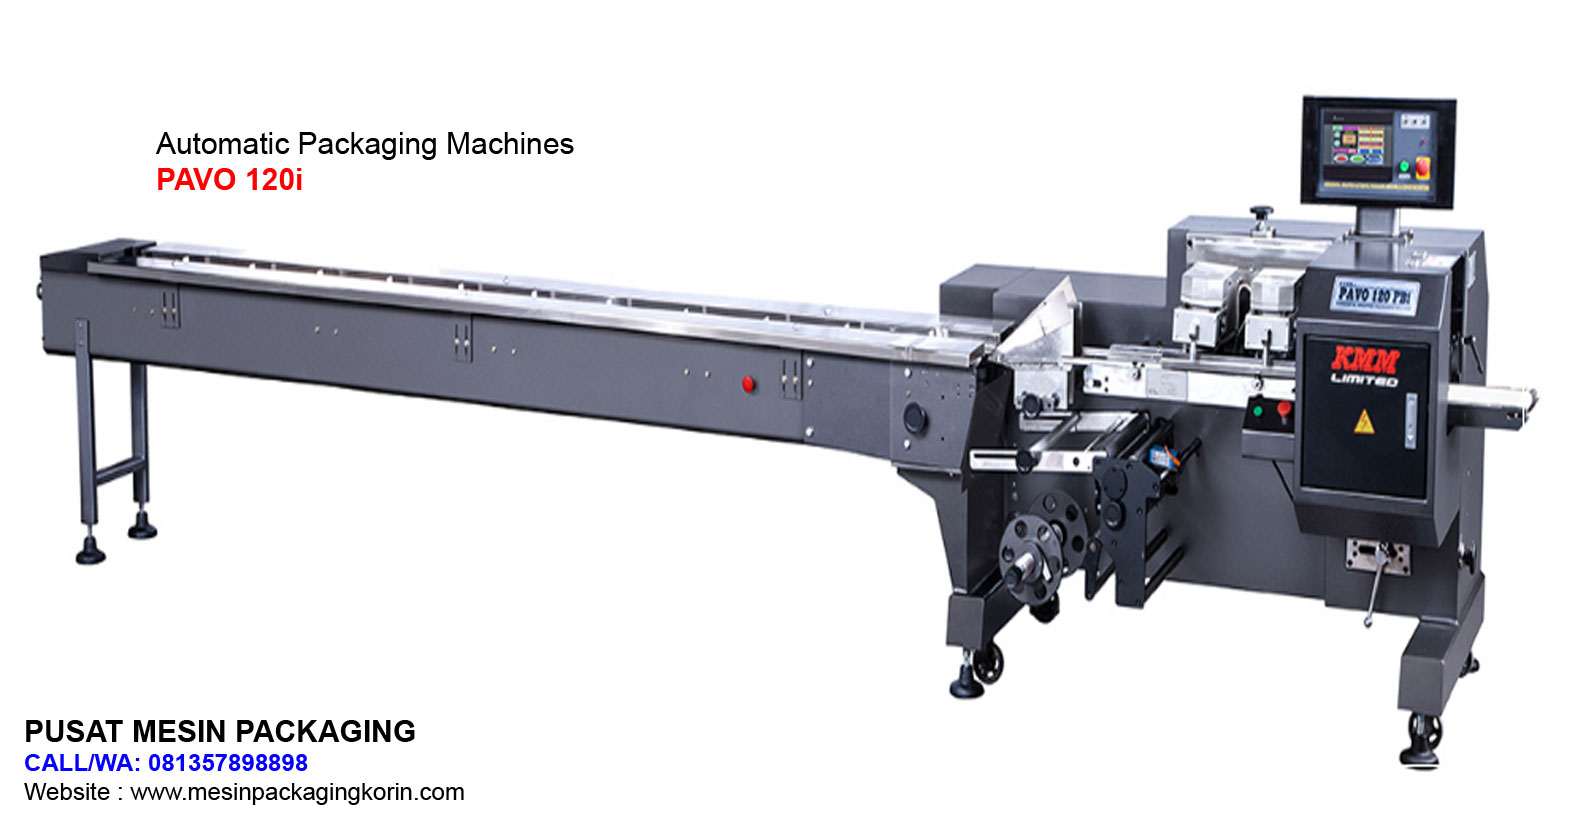 Automatic-Packaging-Machines---pavo-120i